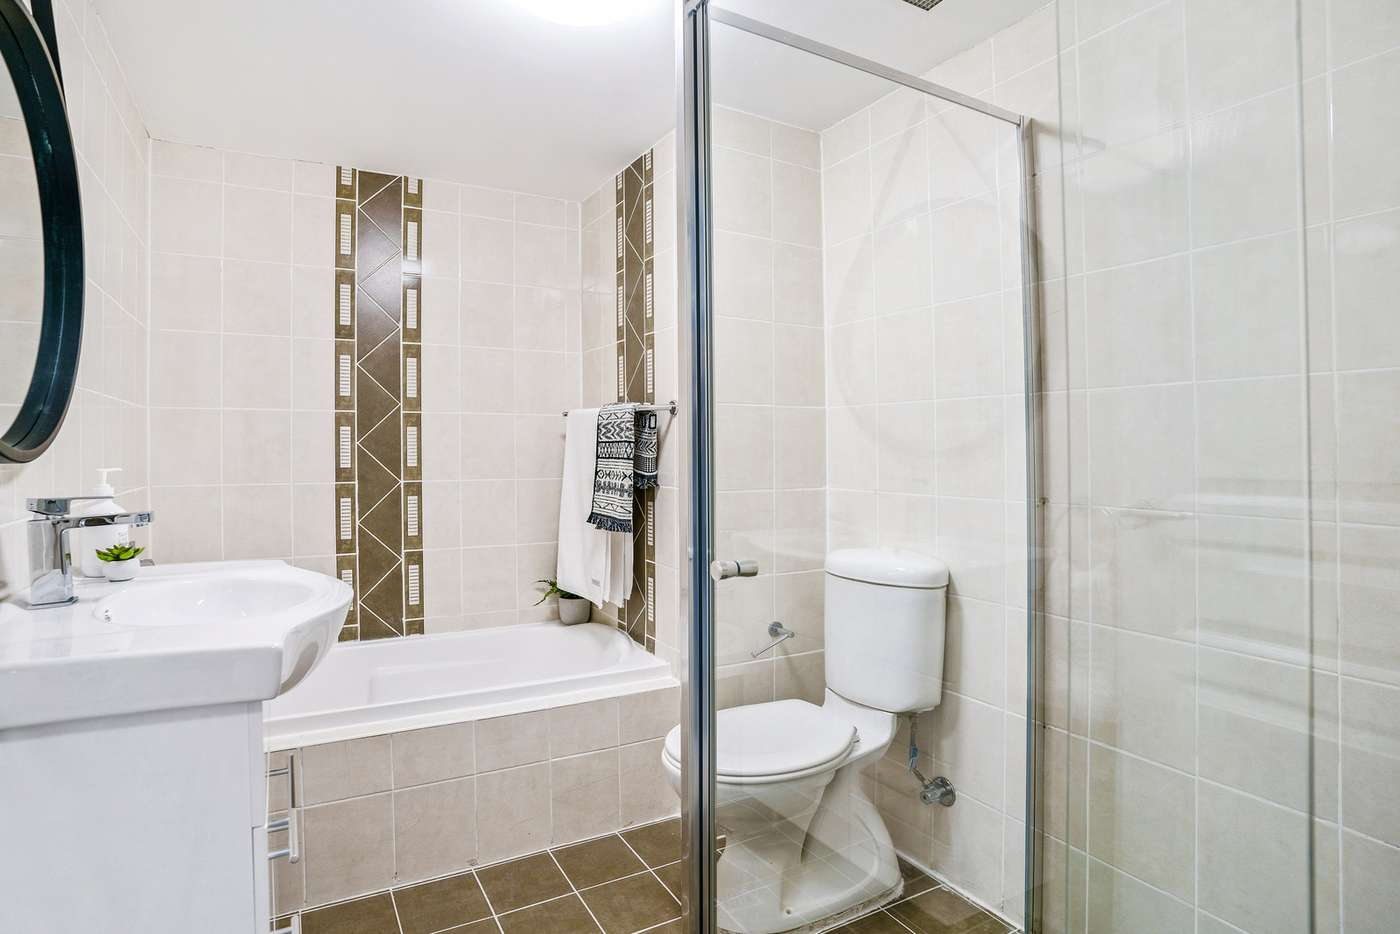 Sixth view of Homely apartment listing, 19/403-409 Liverpool Road, Ashfield NSW 2131